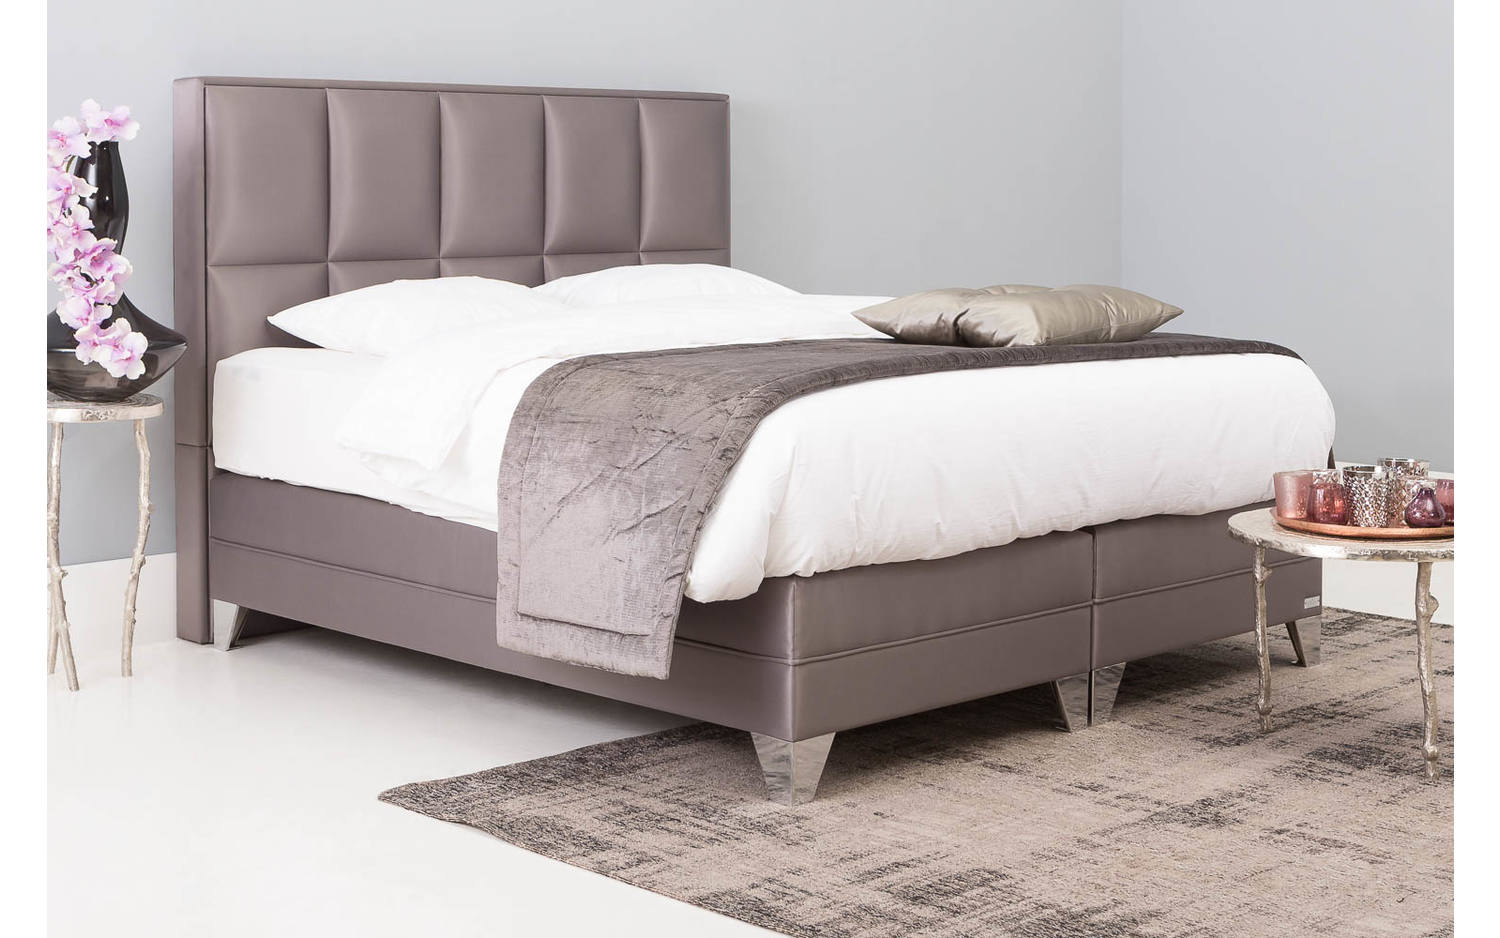 Goedkope Boxspring Compleet Compleet Bed 160x200 Free Aventura Diamond Wit X Cm With